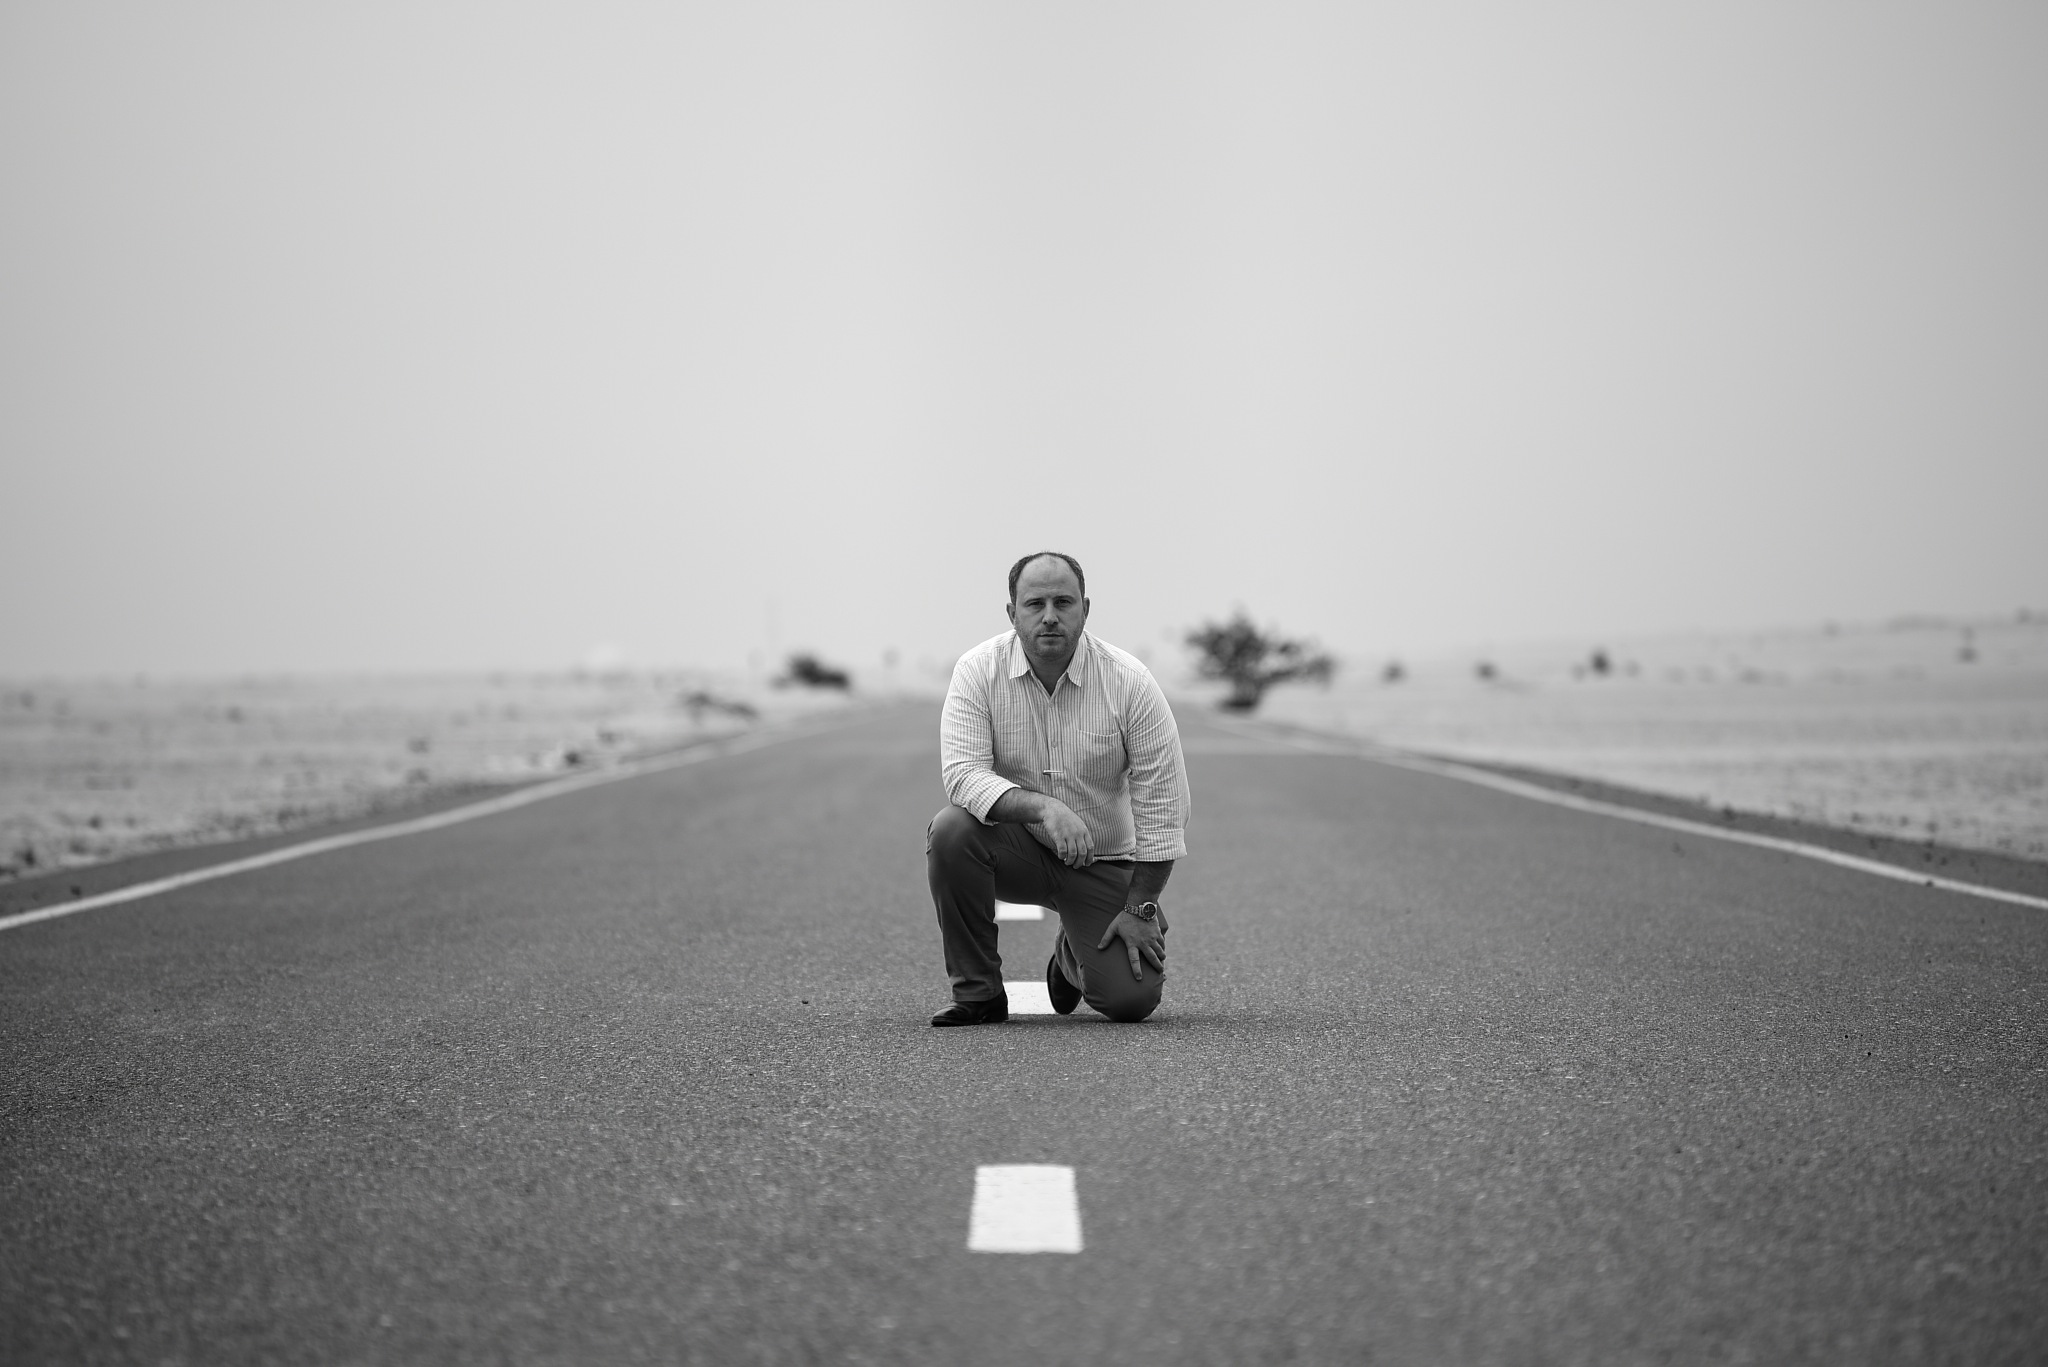 On The Road by Babar Swaleheen